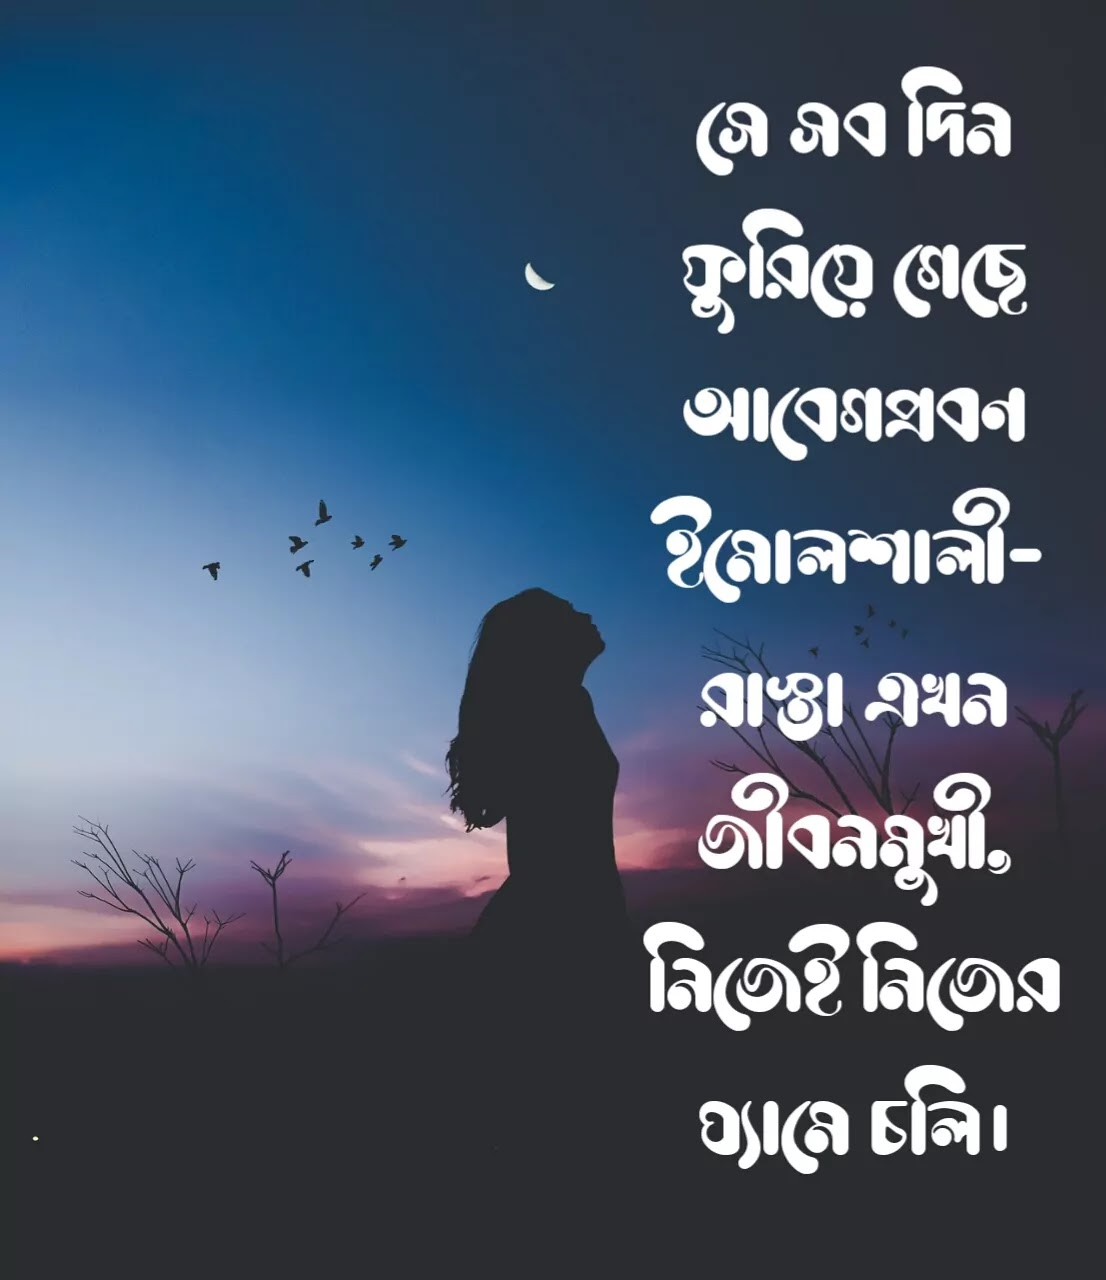 Breckup quotes in bangla